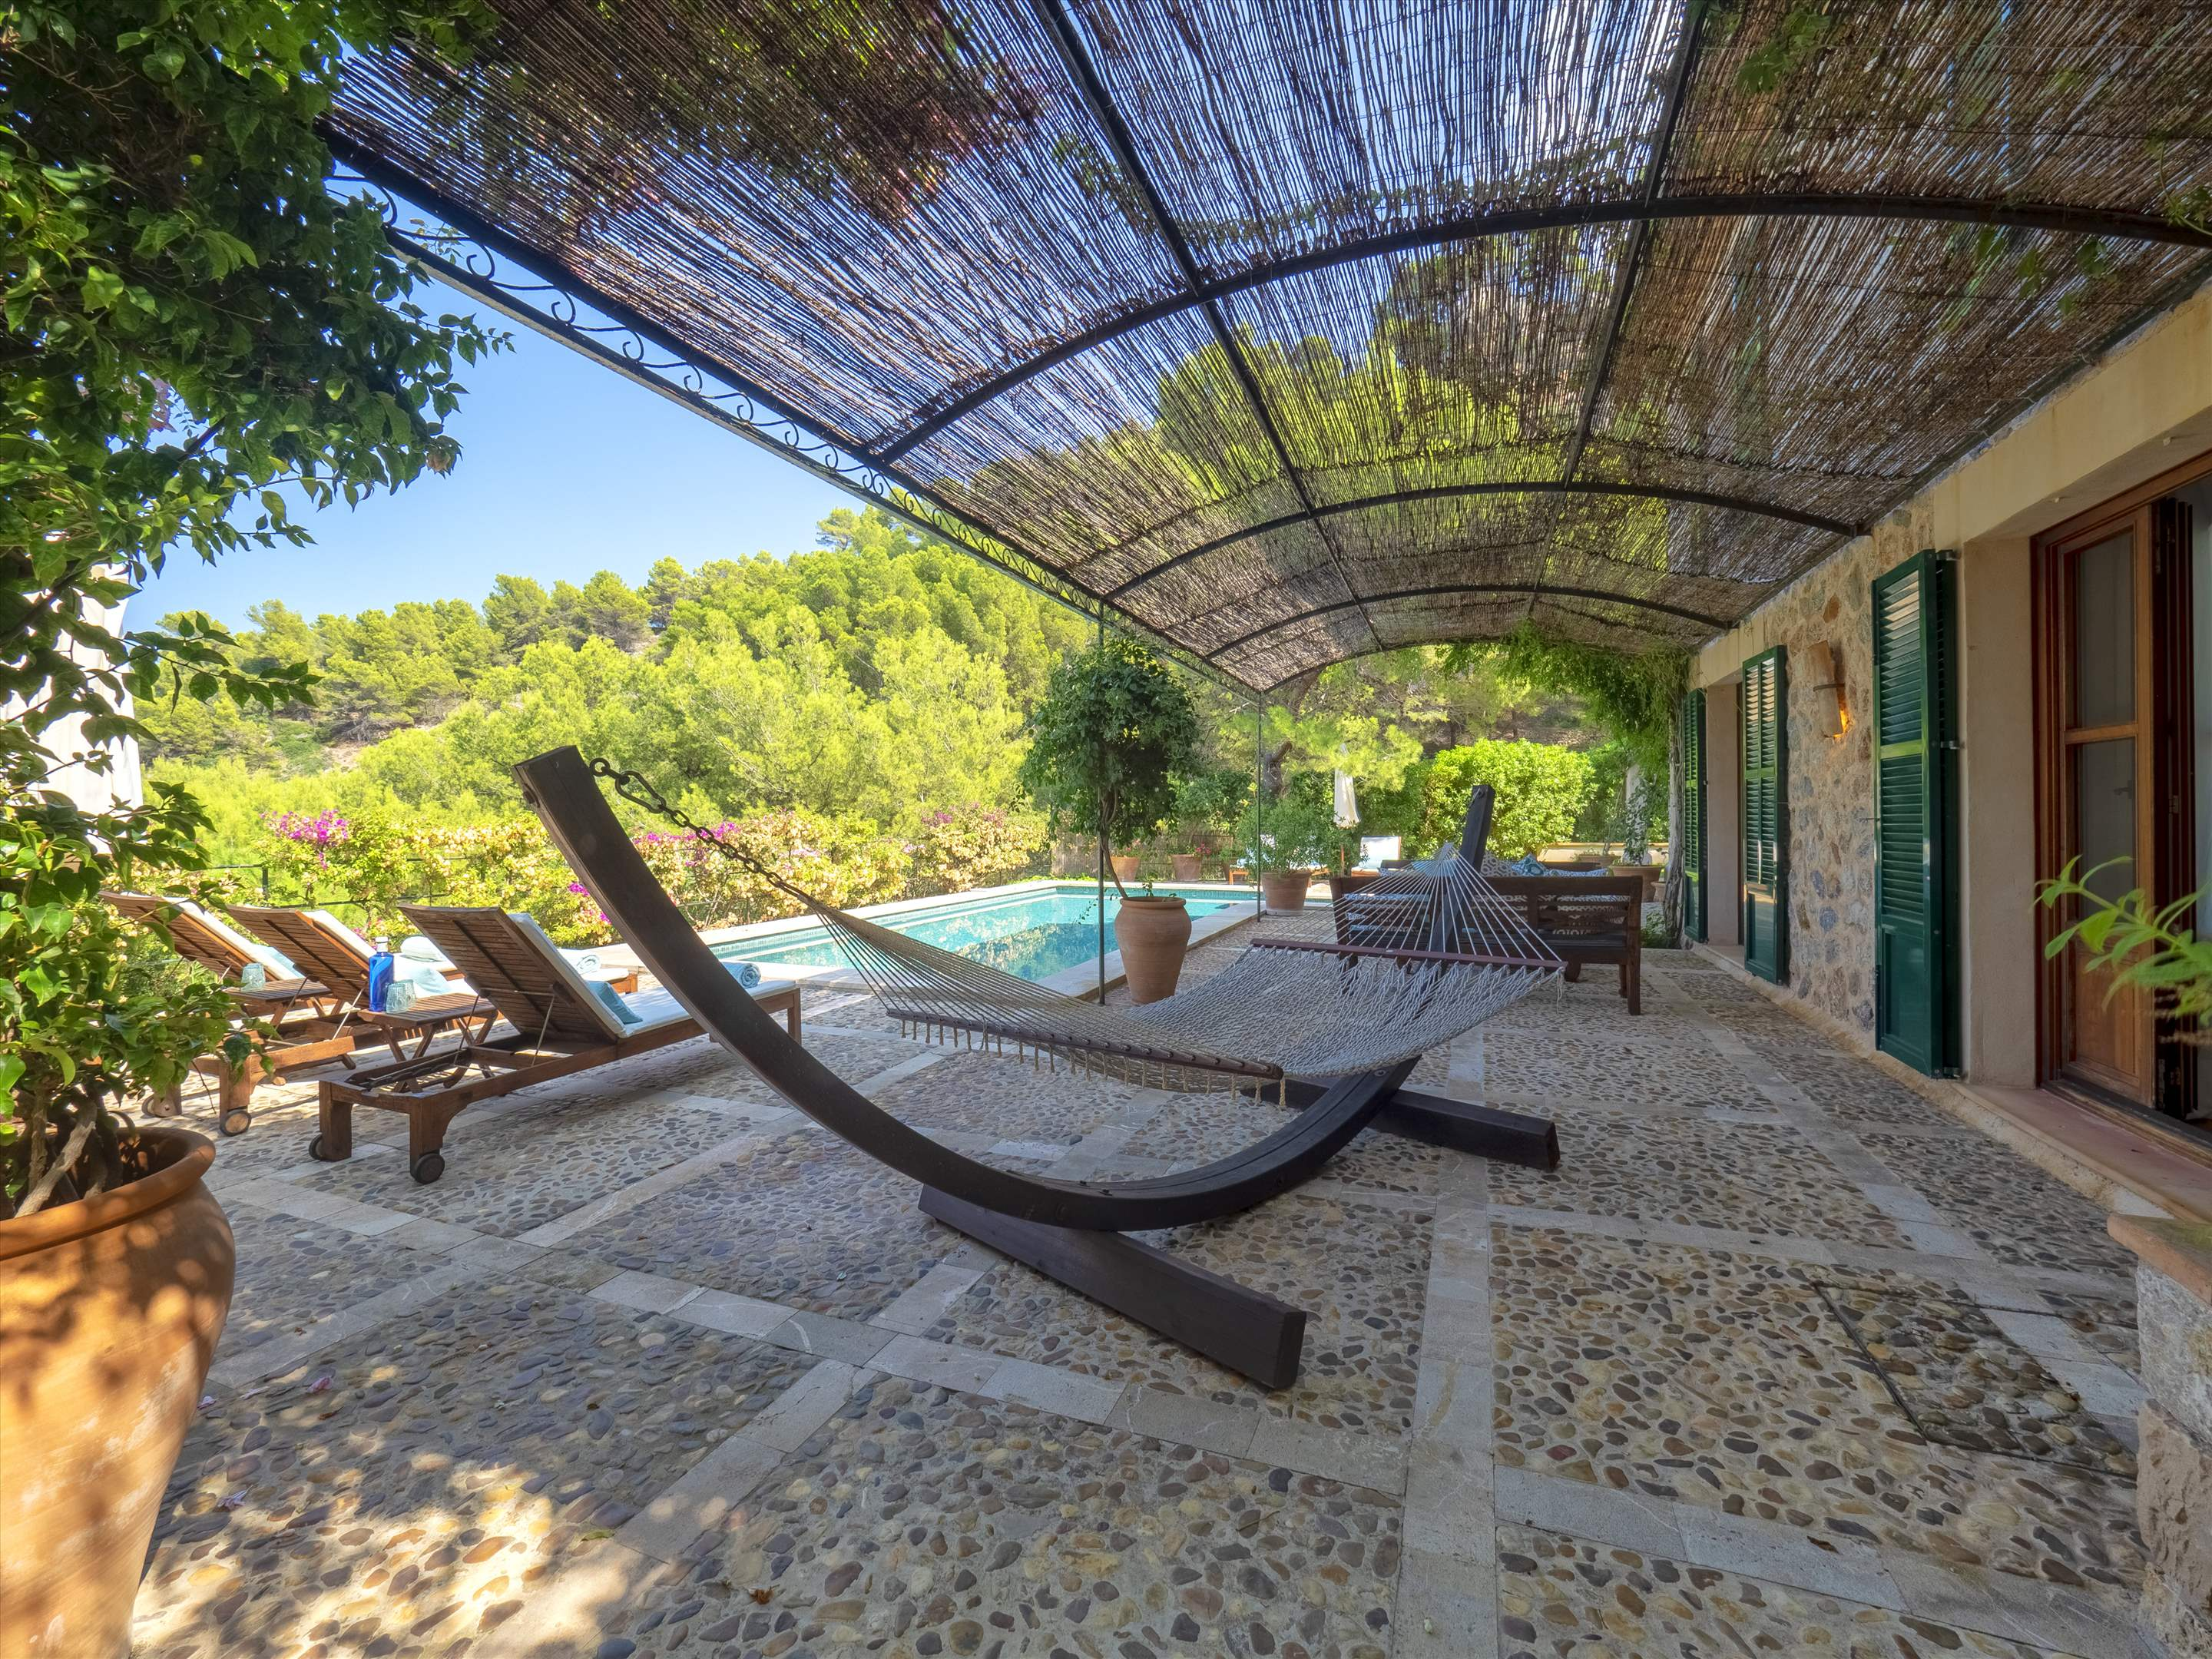 Sa Cala, 4 bedroom villa in Soller & Deia, Majorca Photo #8